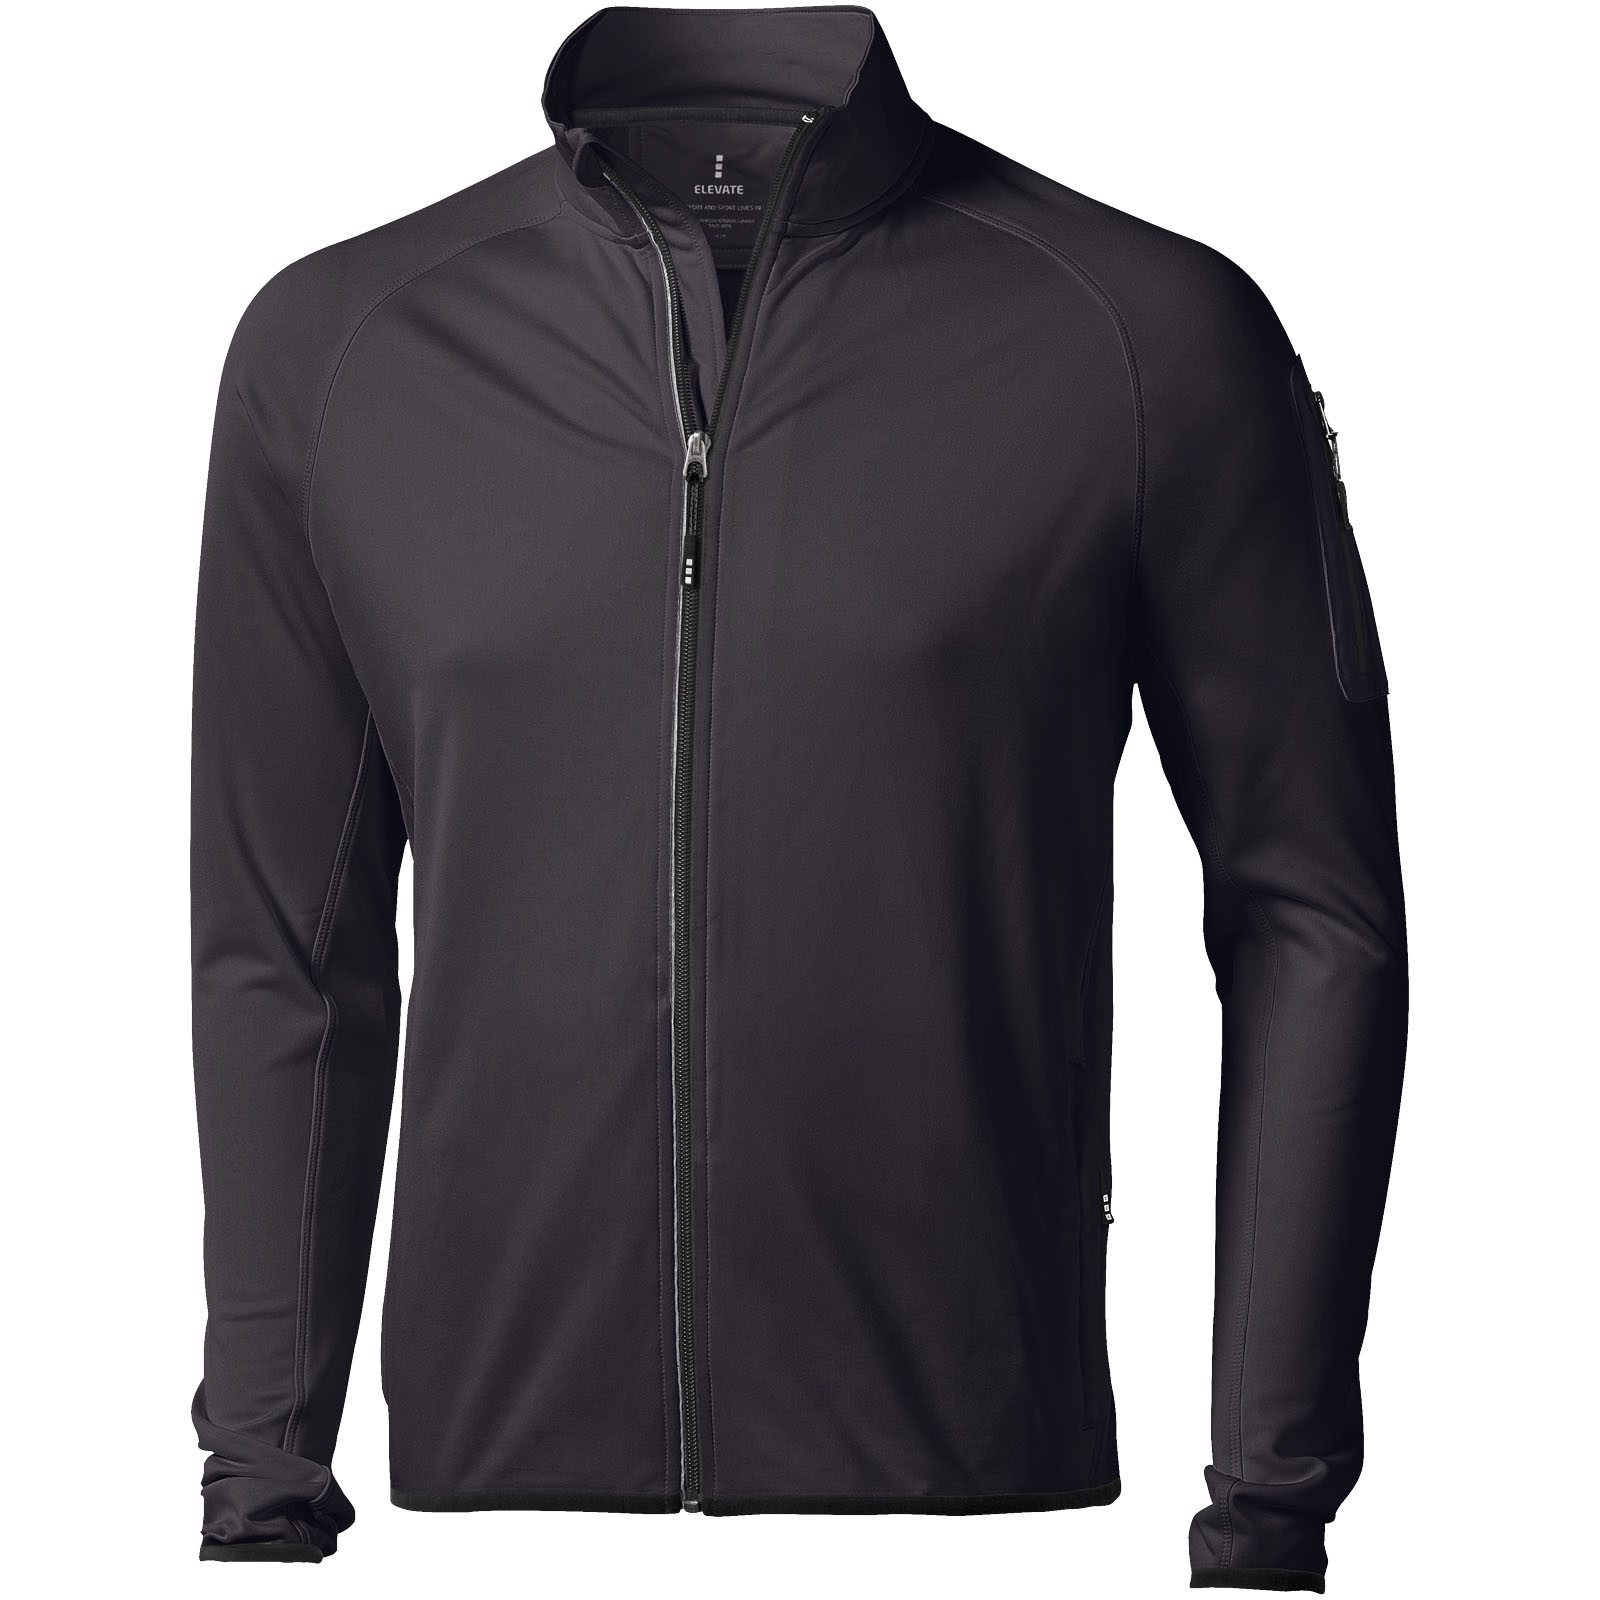 Mani power fleece full zip jacket - Solid Black / 3XL